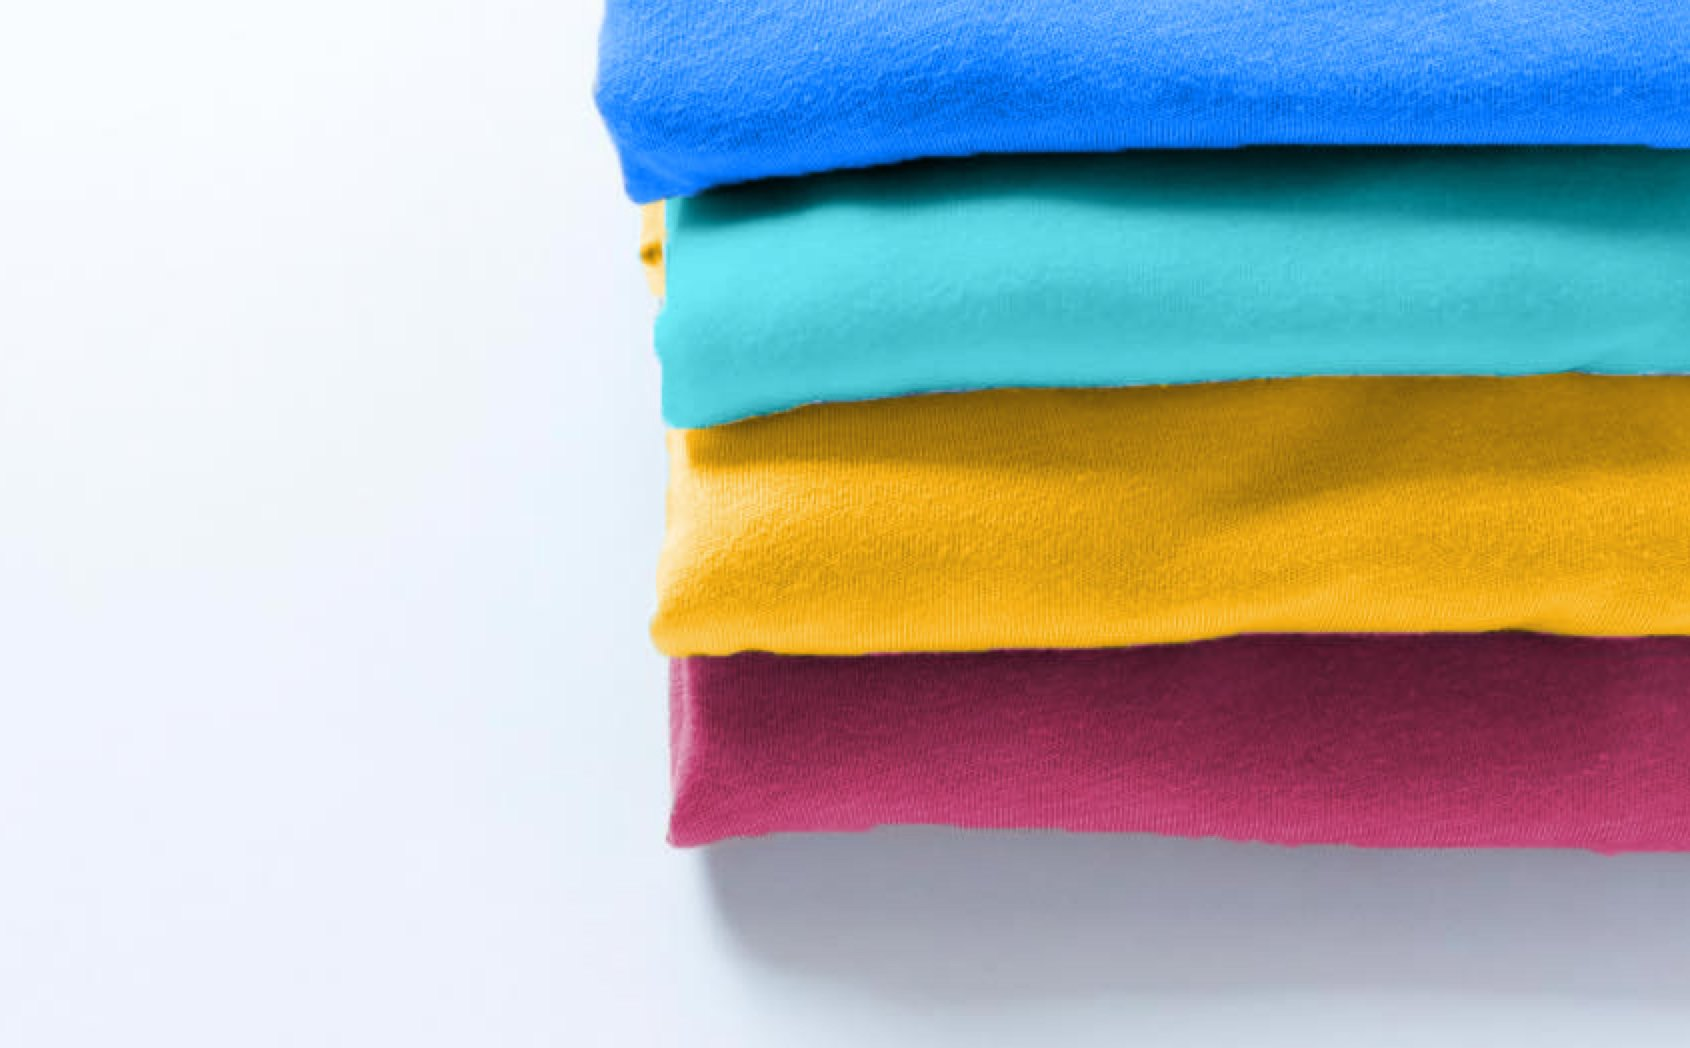 Colorful t-shirts, folded and stacked on a table